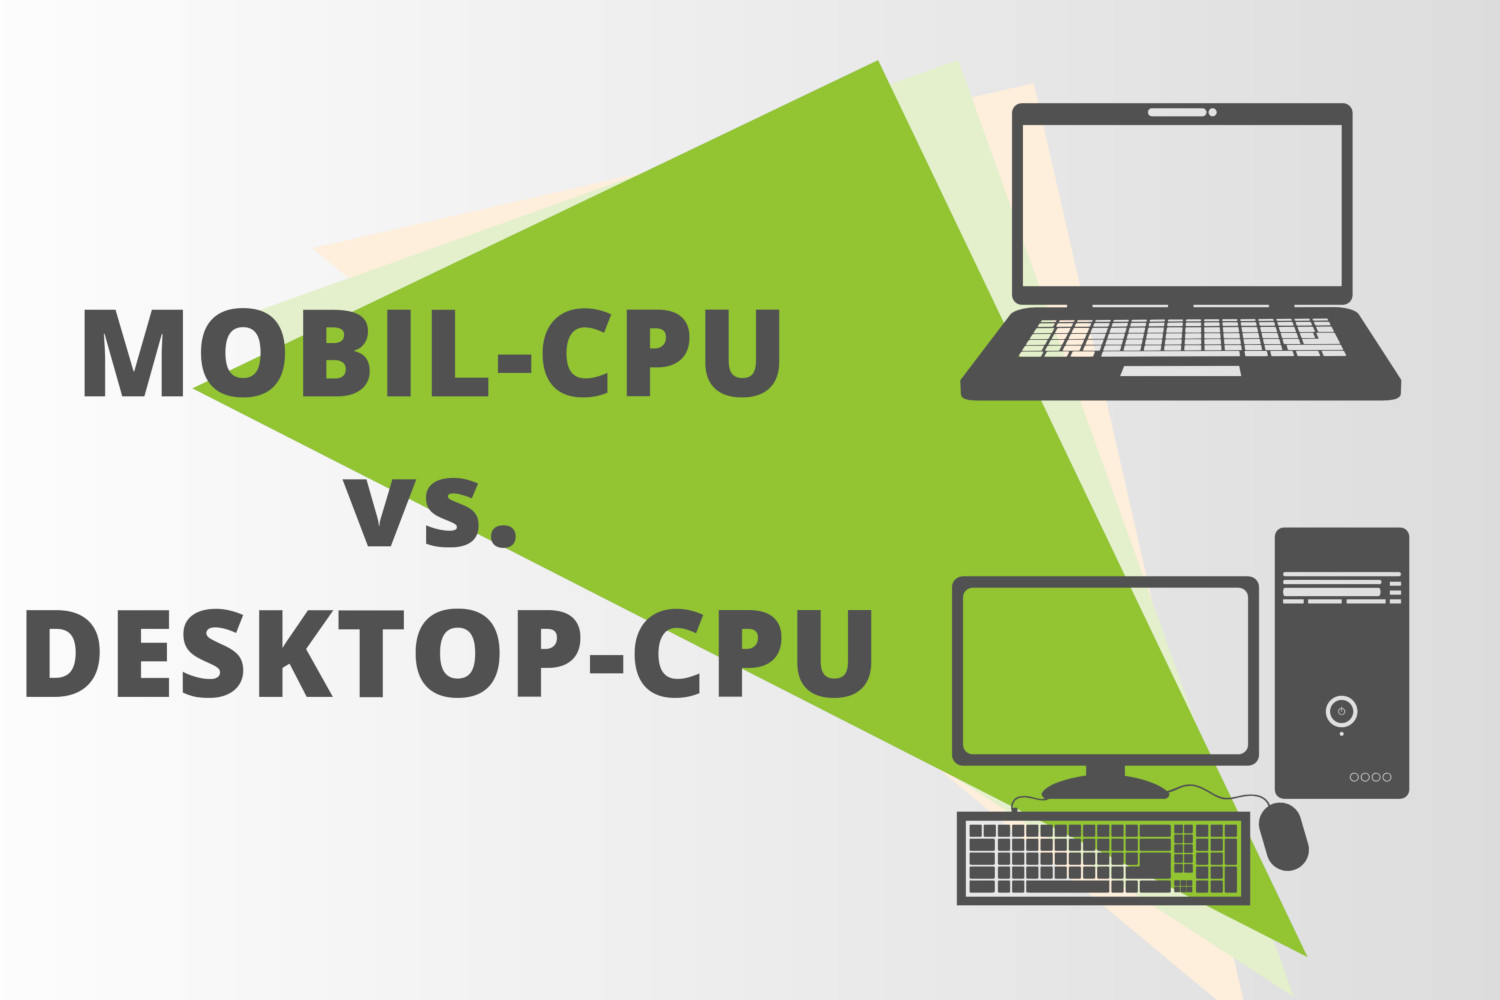 What is the difference between mobile and desktop CPUs?